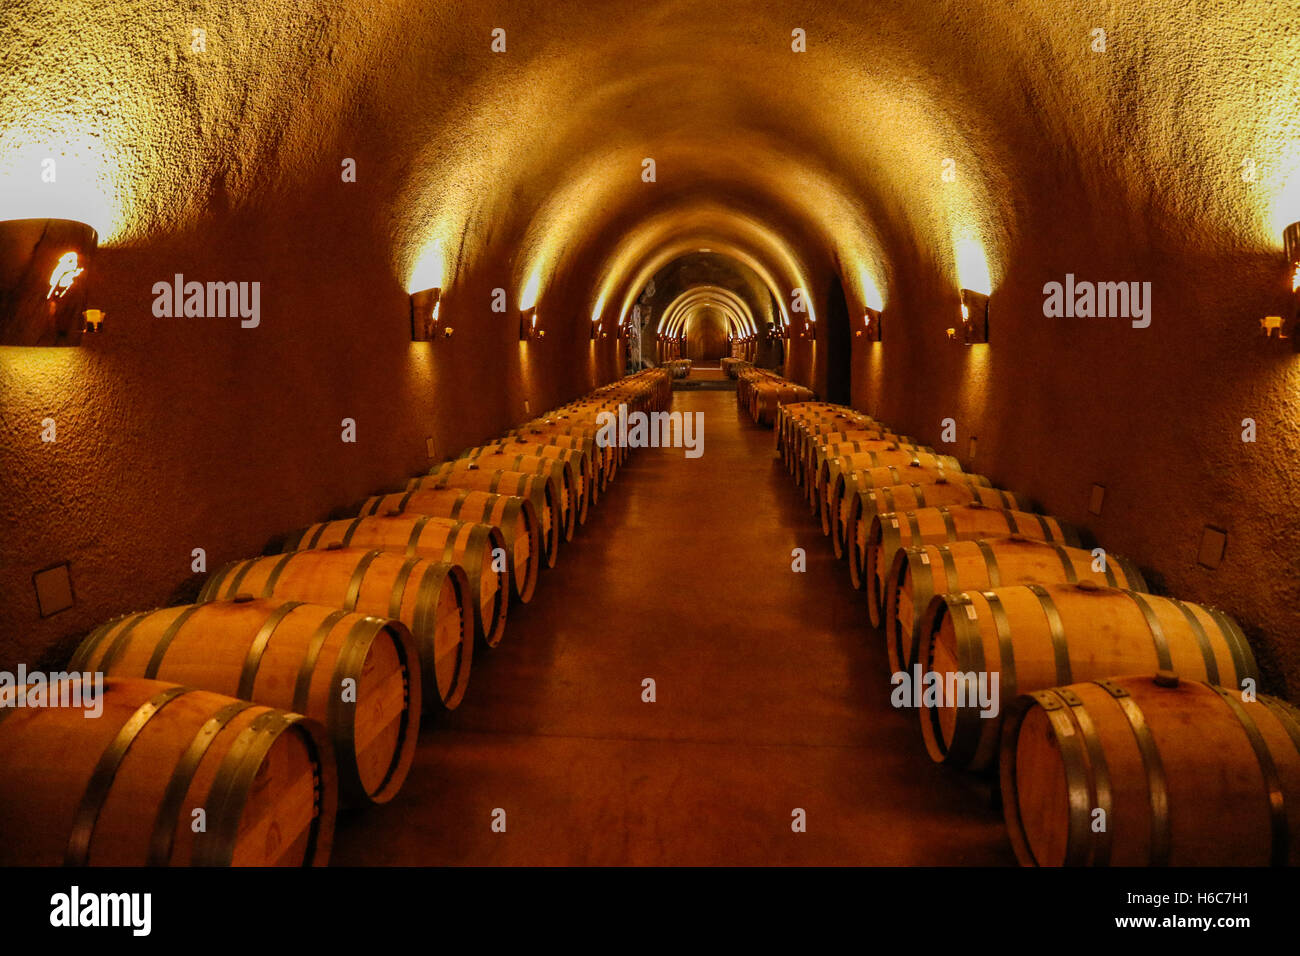 Empty wine barrels in a winery - Stock Image